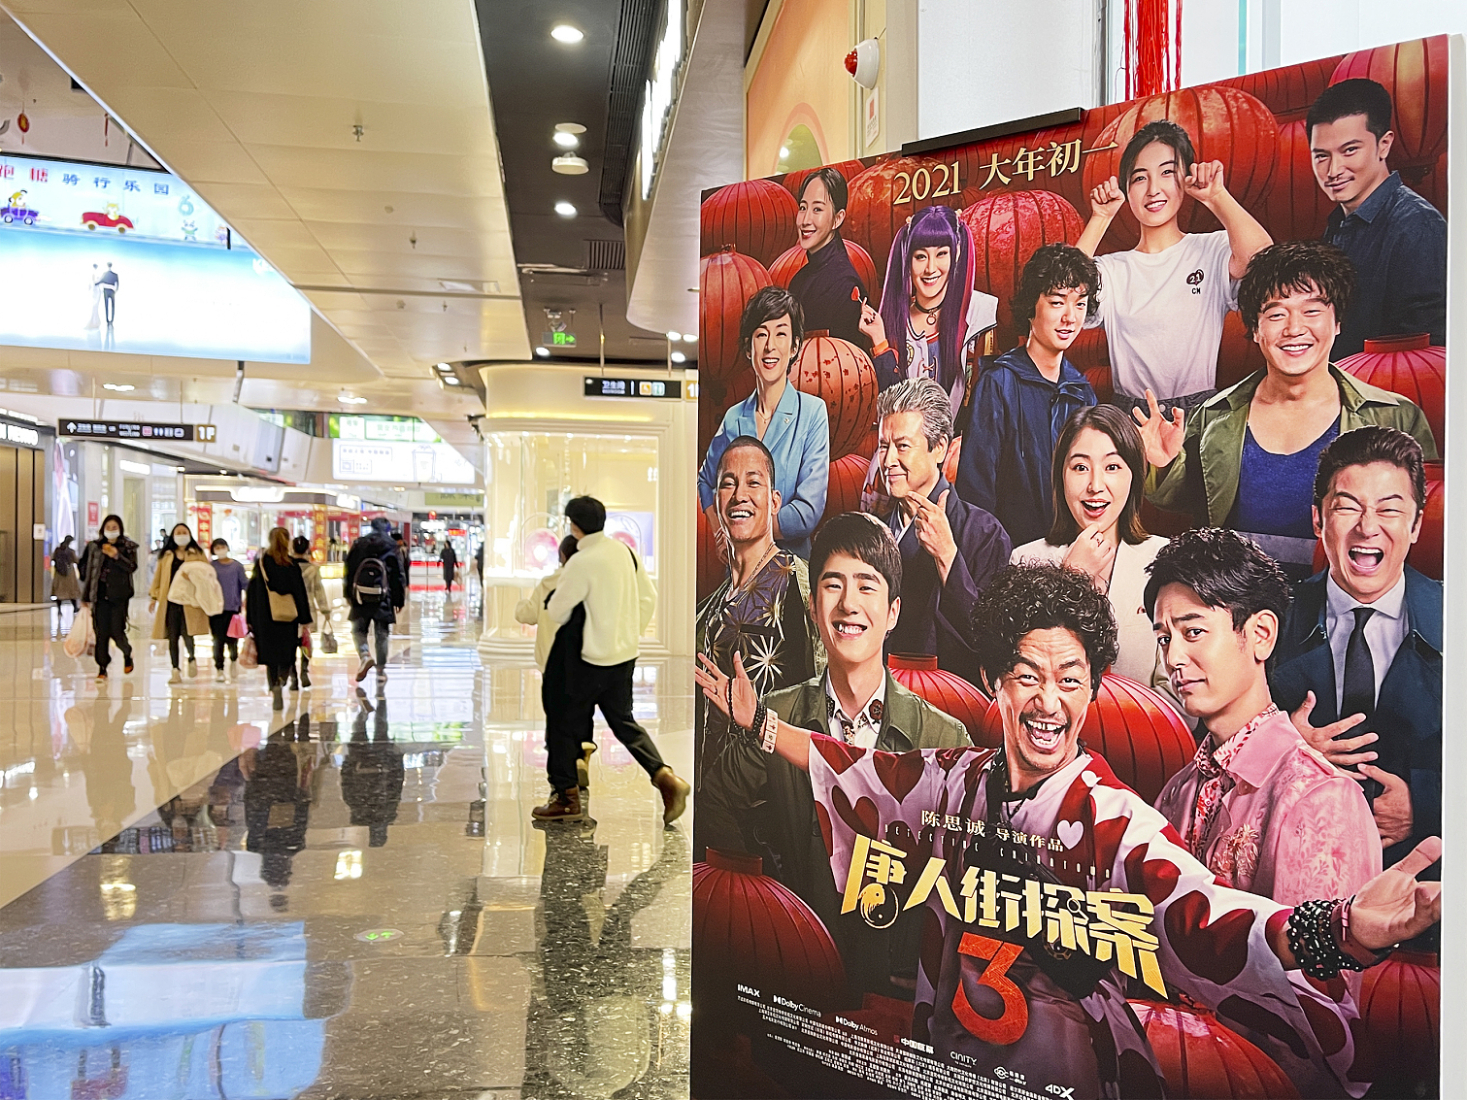 'Detective Chinatown 3' dominates box office on Chinese new year